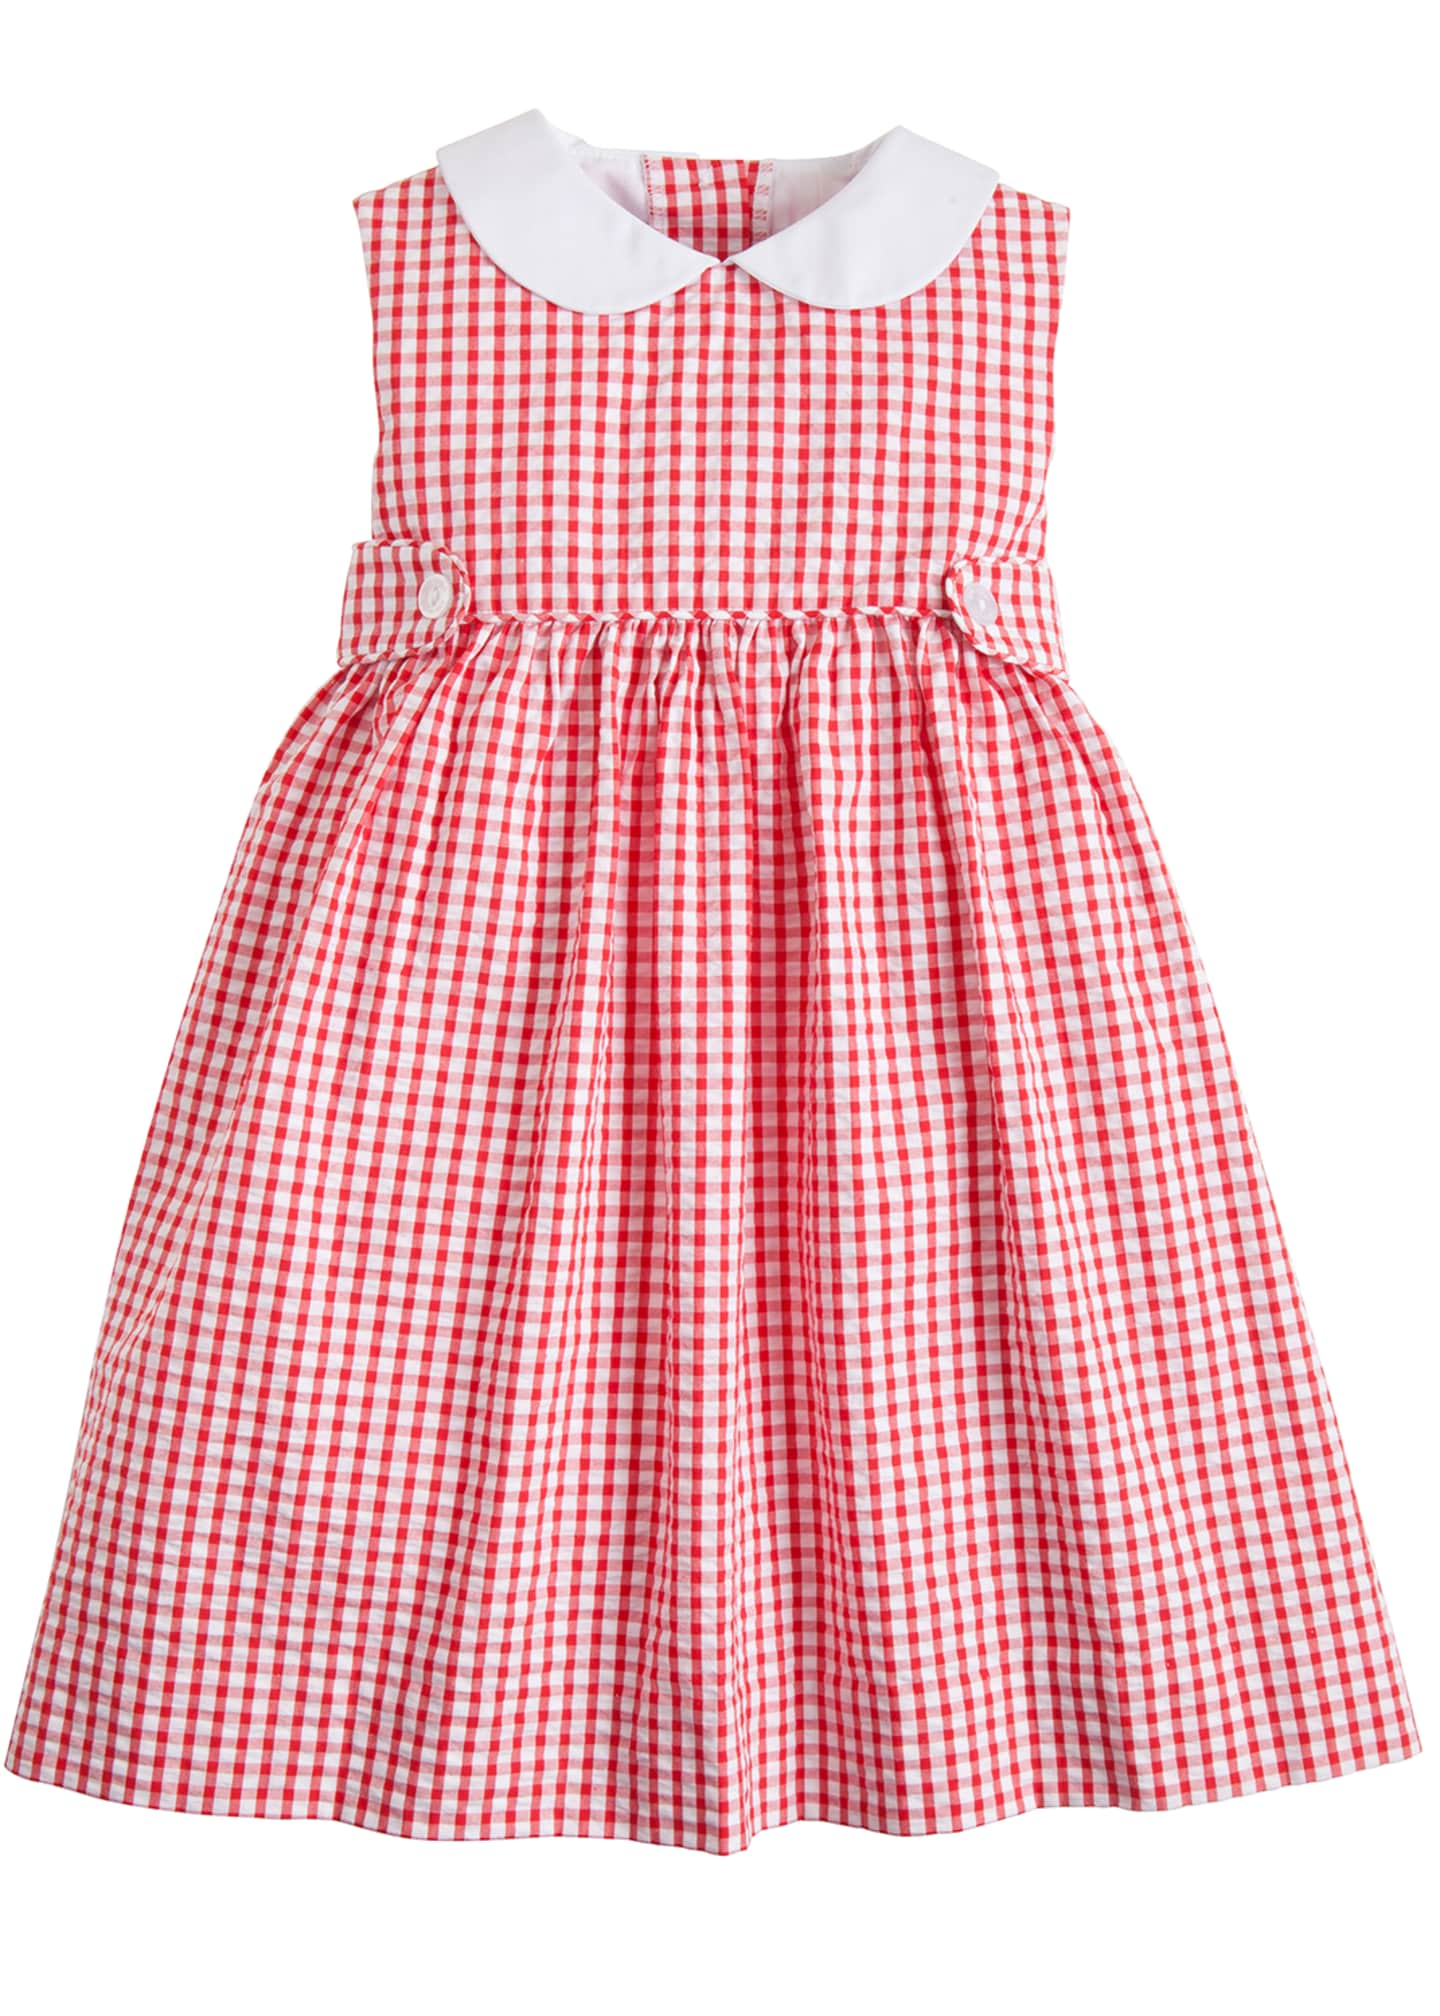 Nantucket Gingham Button Tab Dress, Size 12M-4